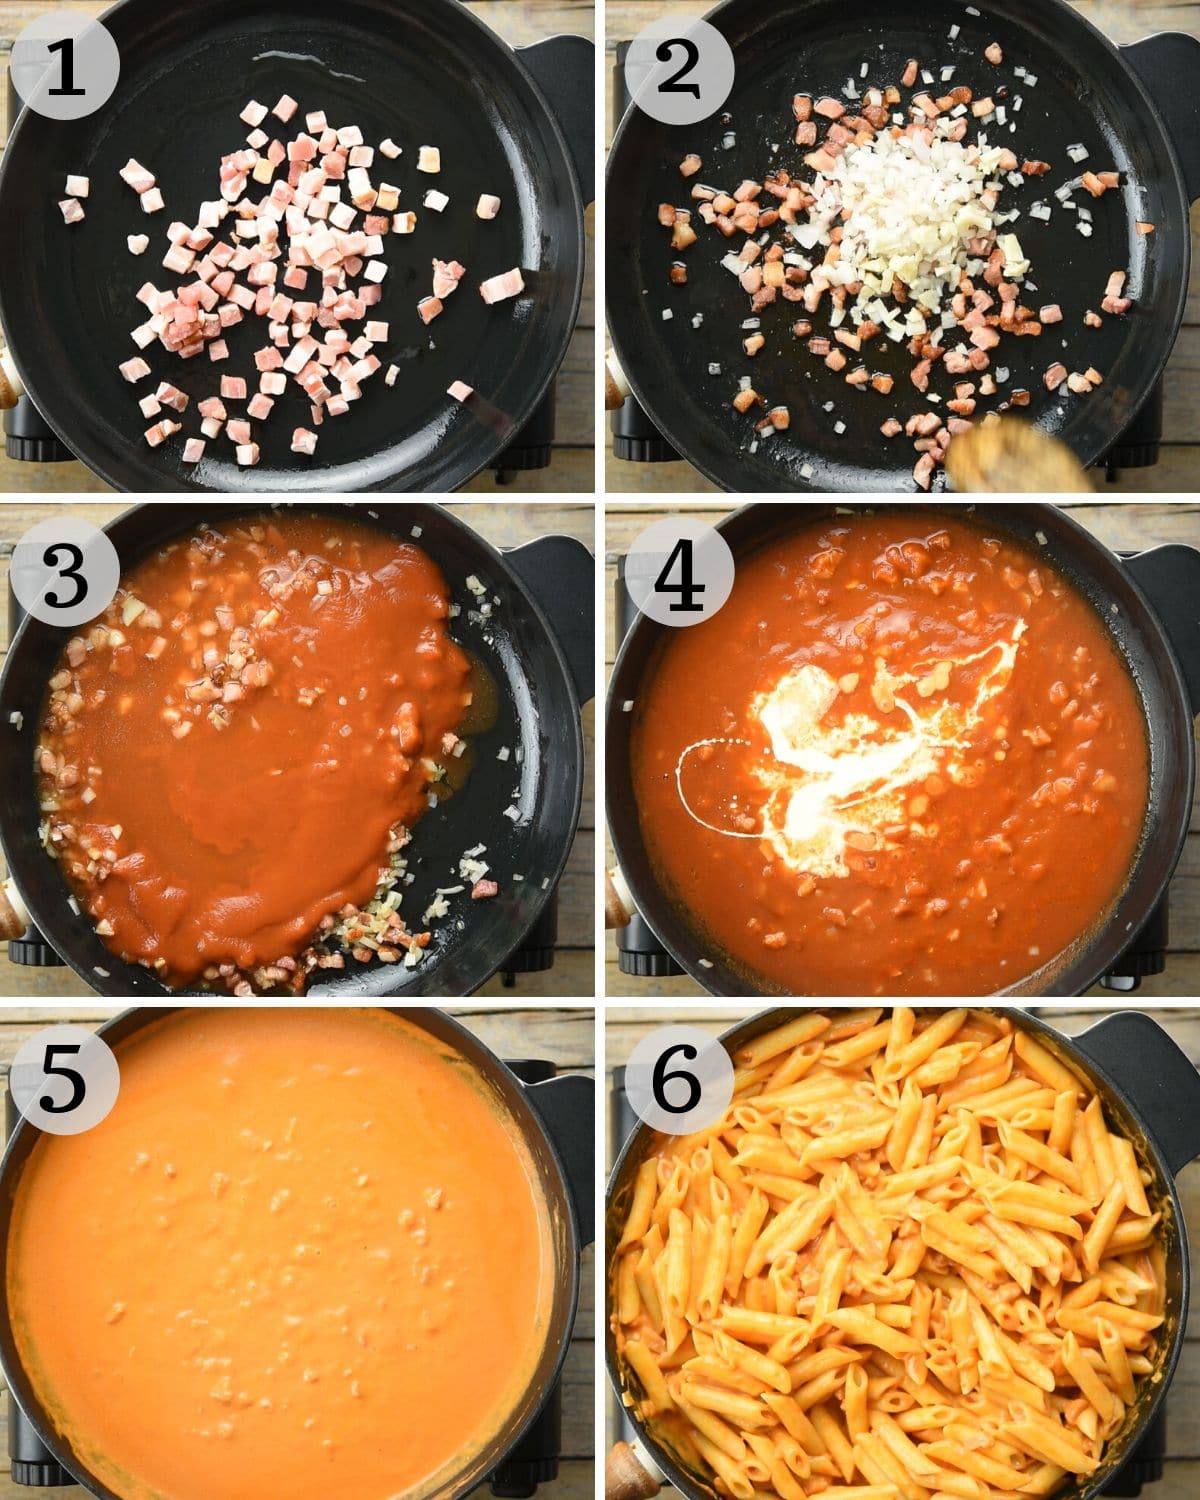 Step by step photos for making penne alla vodka